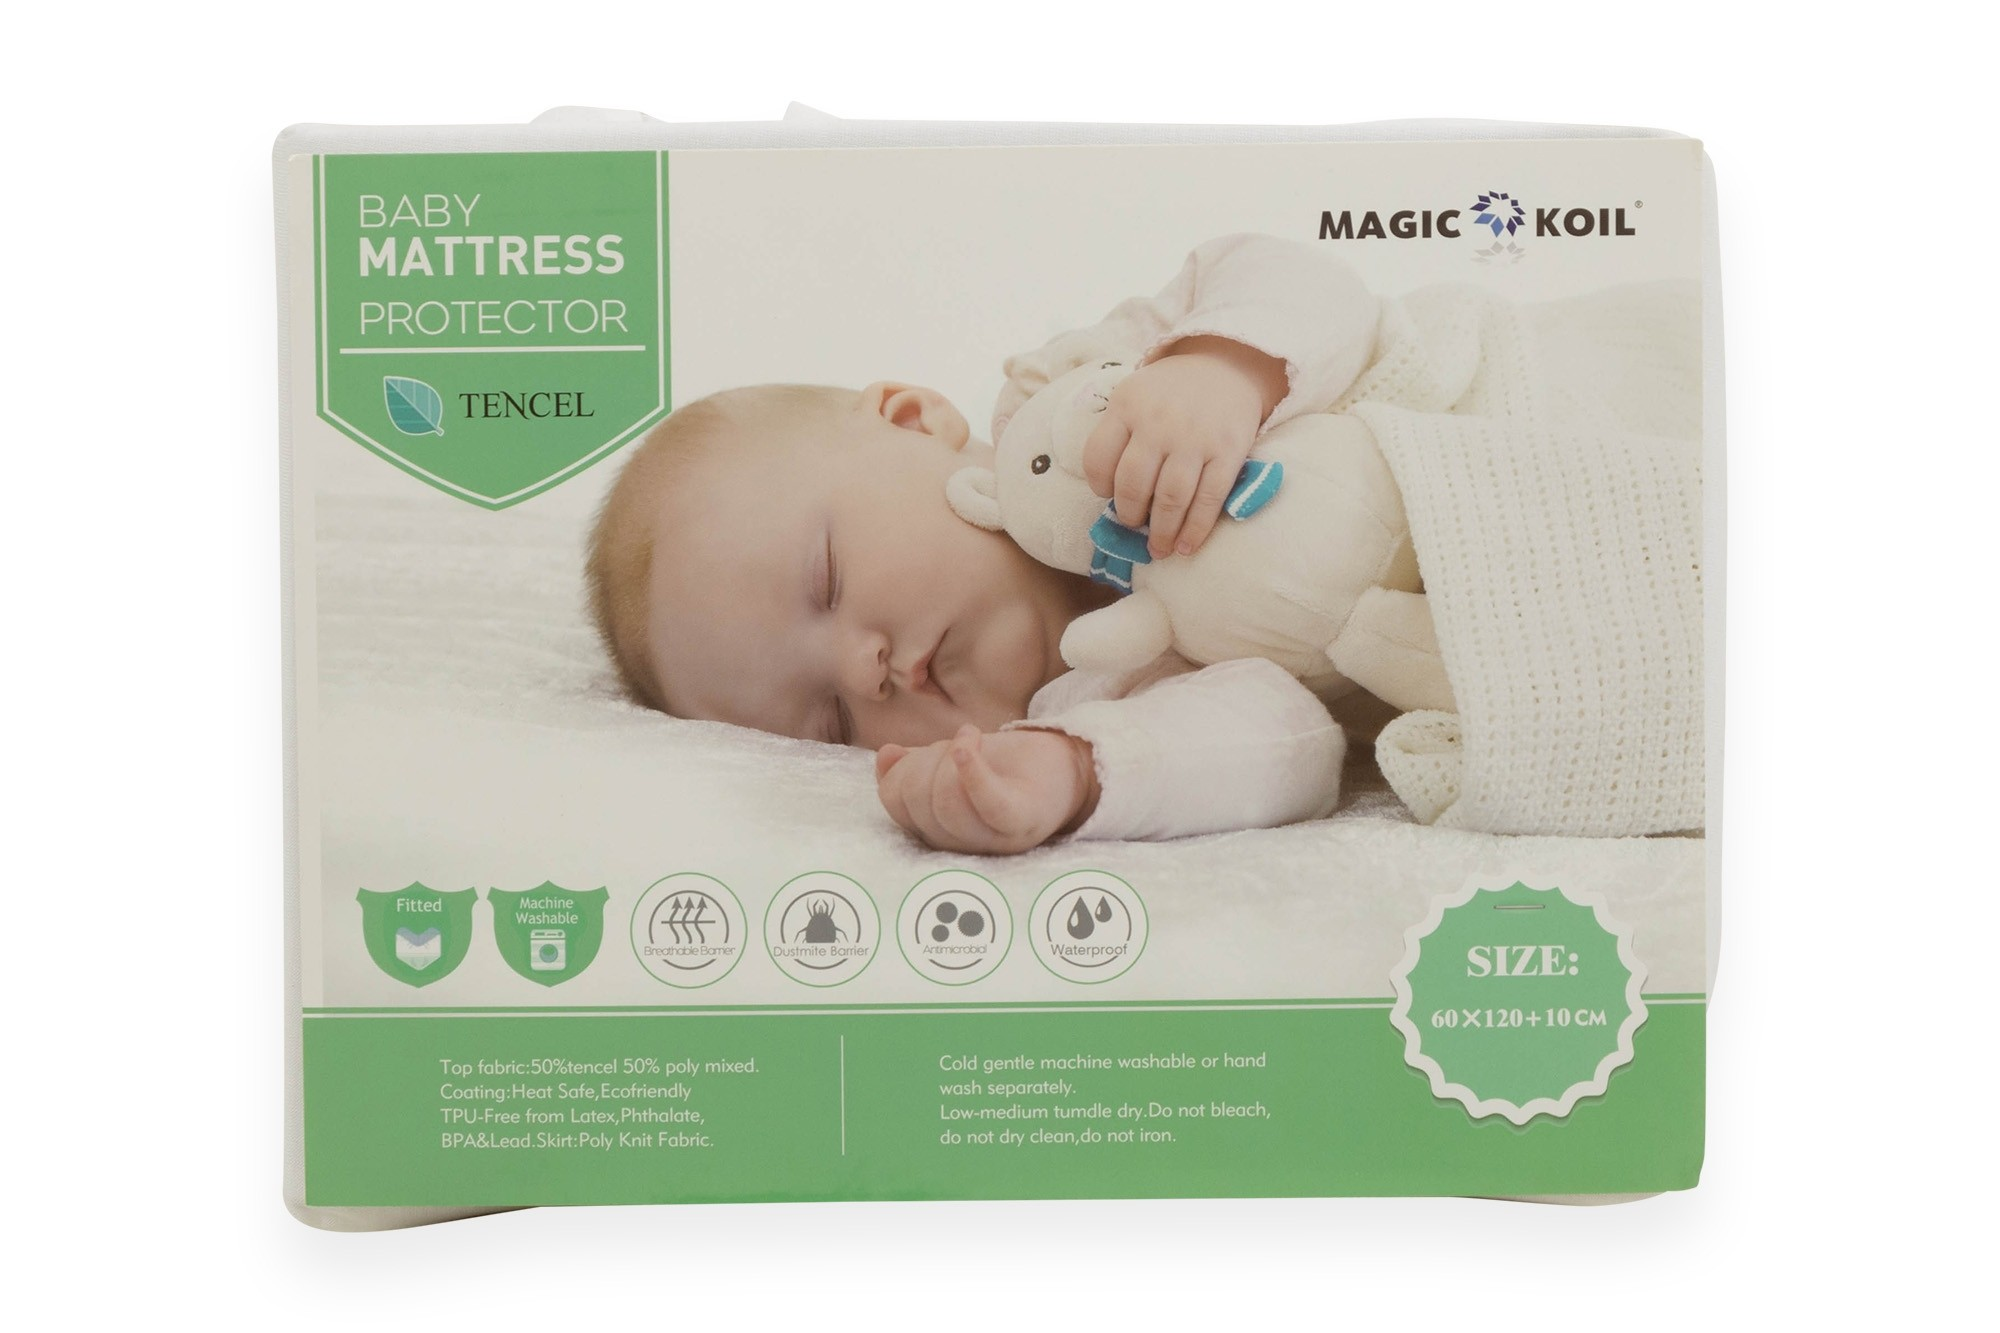 Toddler Mattress Vs Baby Mattress Magic Koil Baby Tencel Fitted Mattress Protector